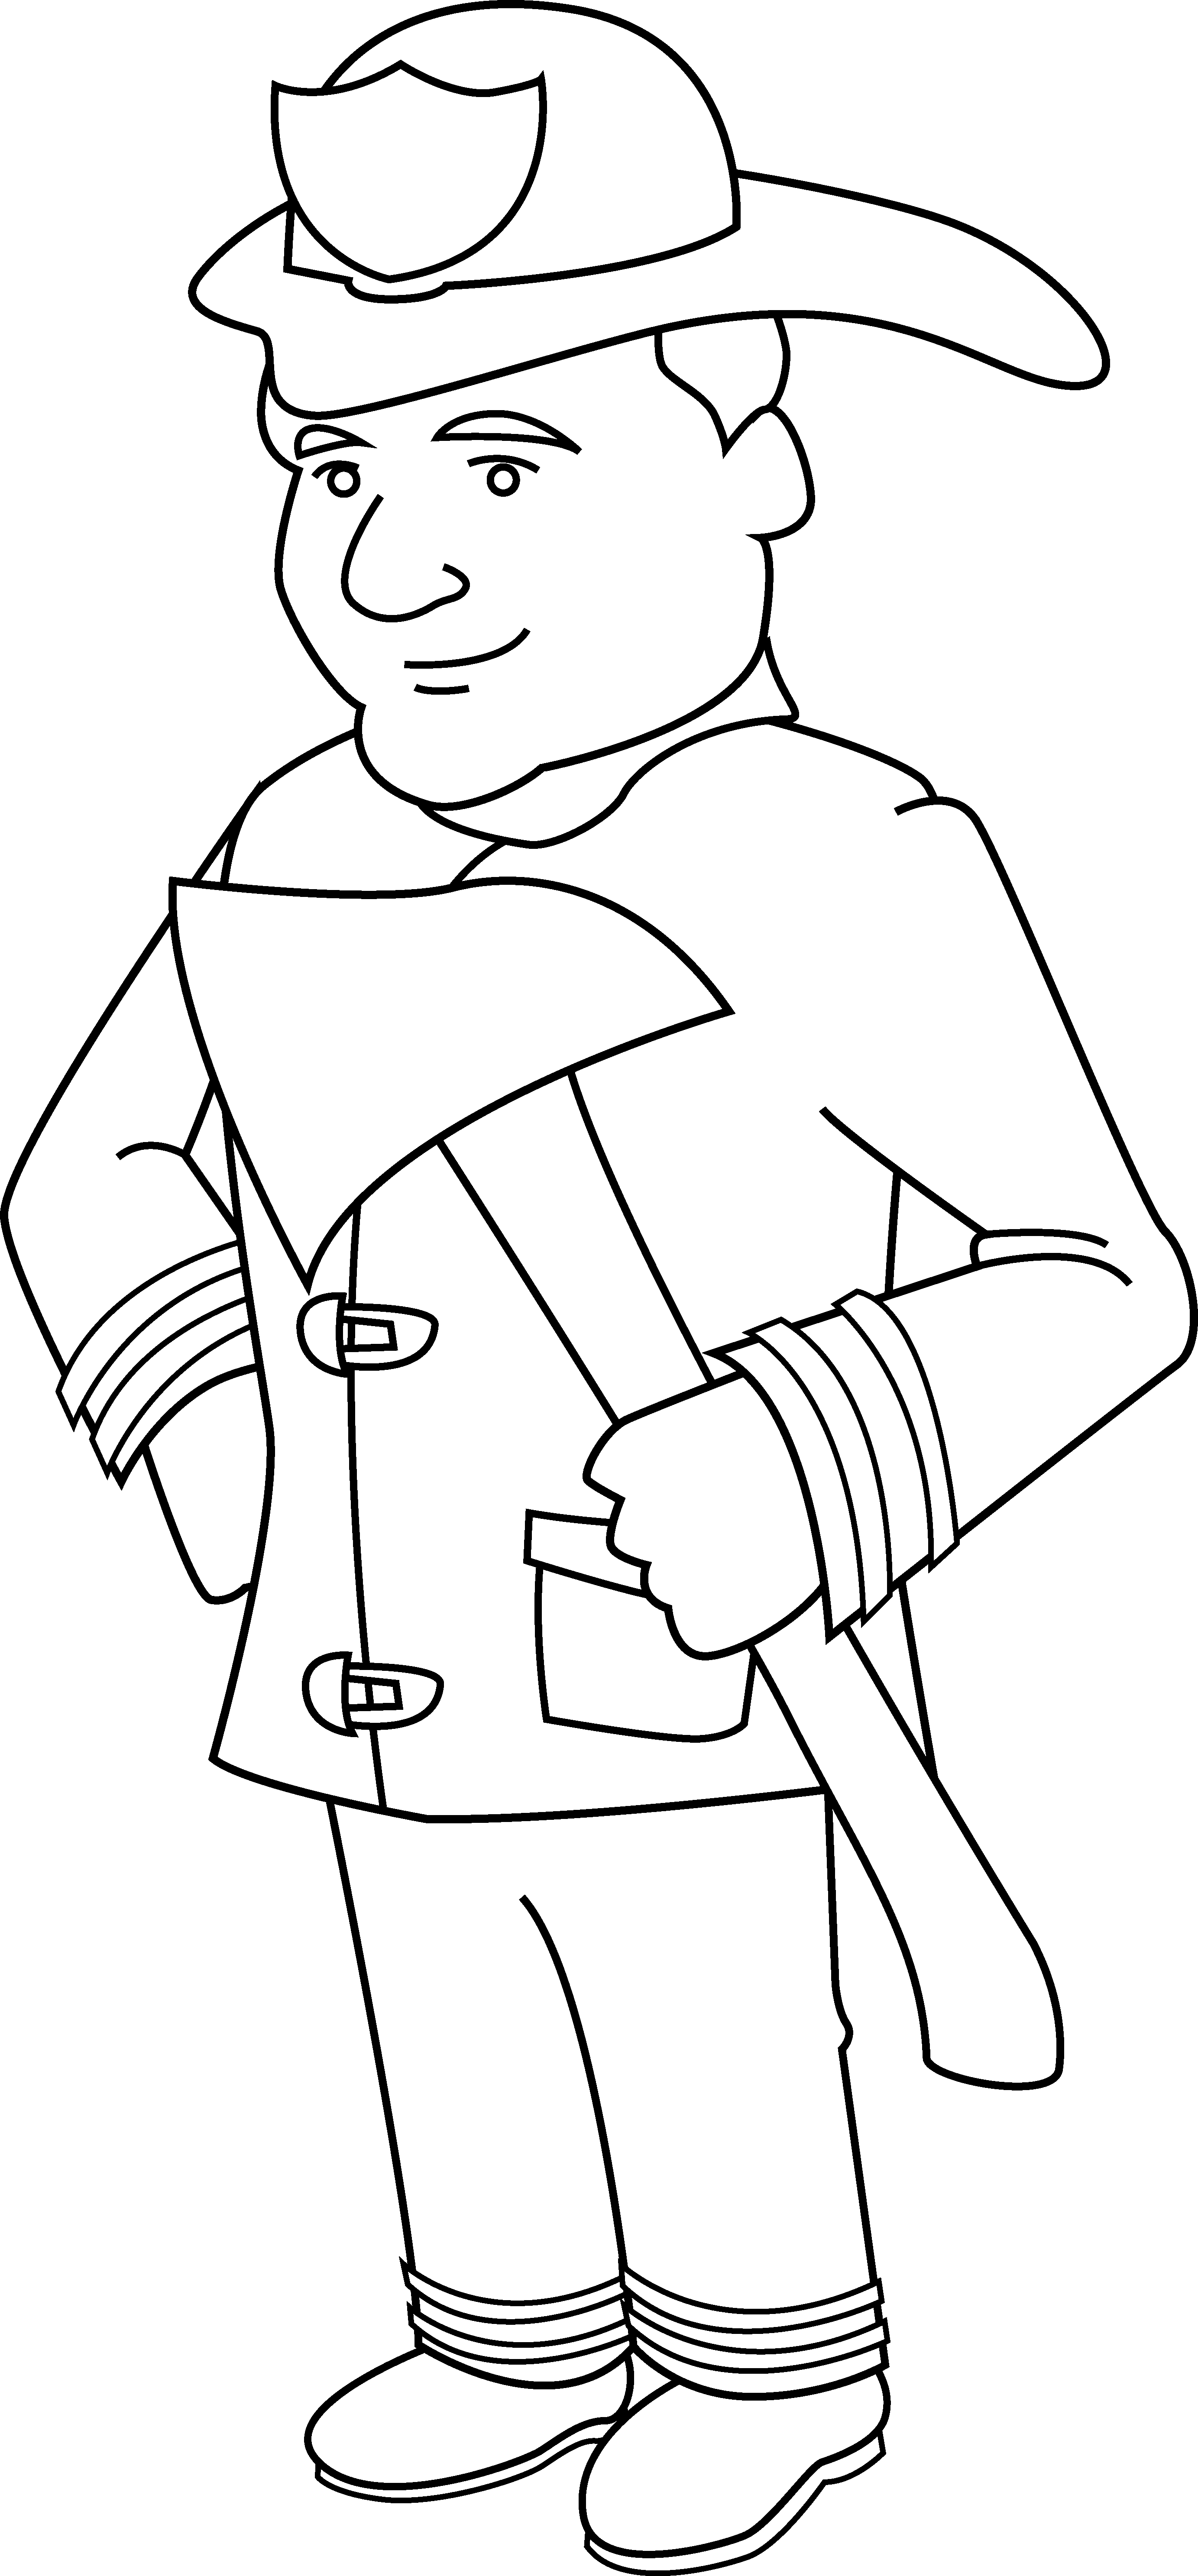 Fireman clipart colouring page.  collection of firefighter